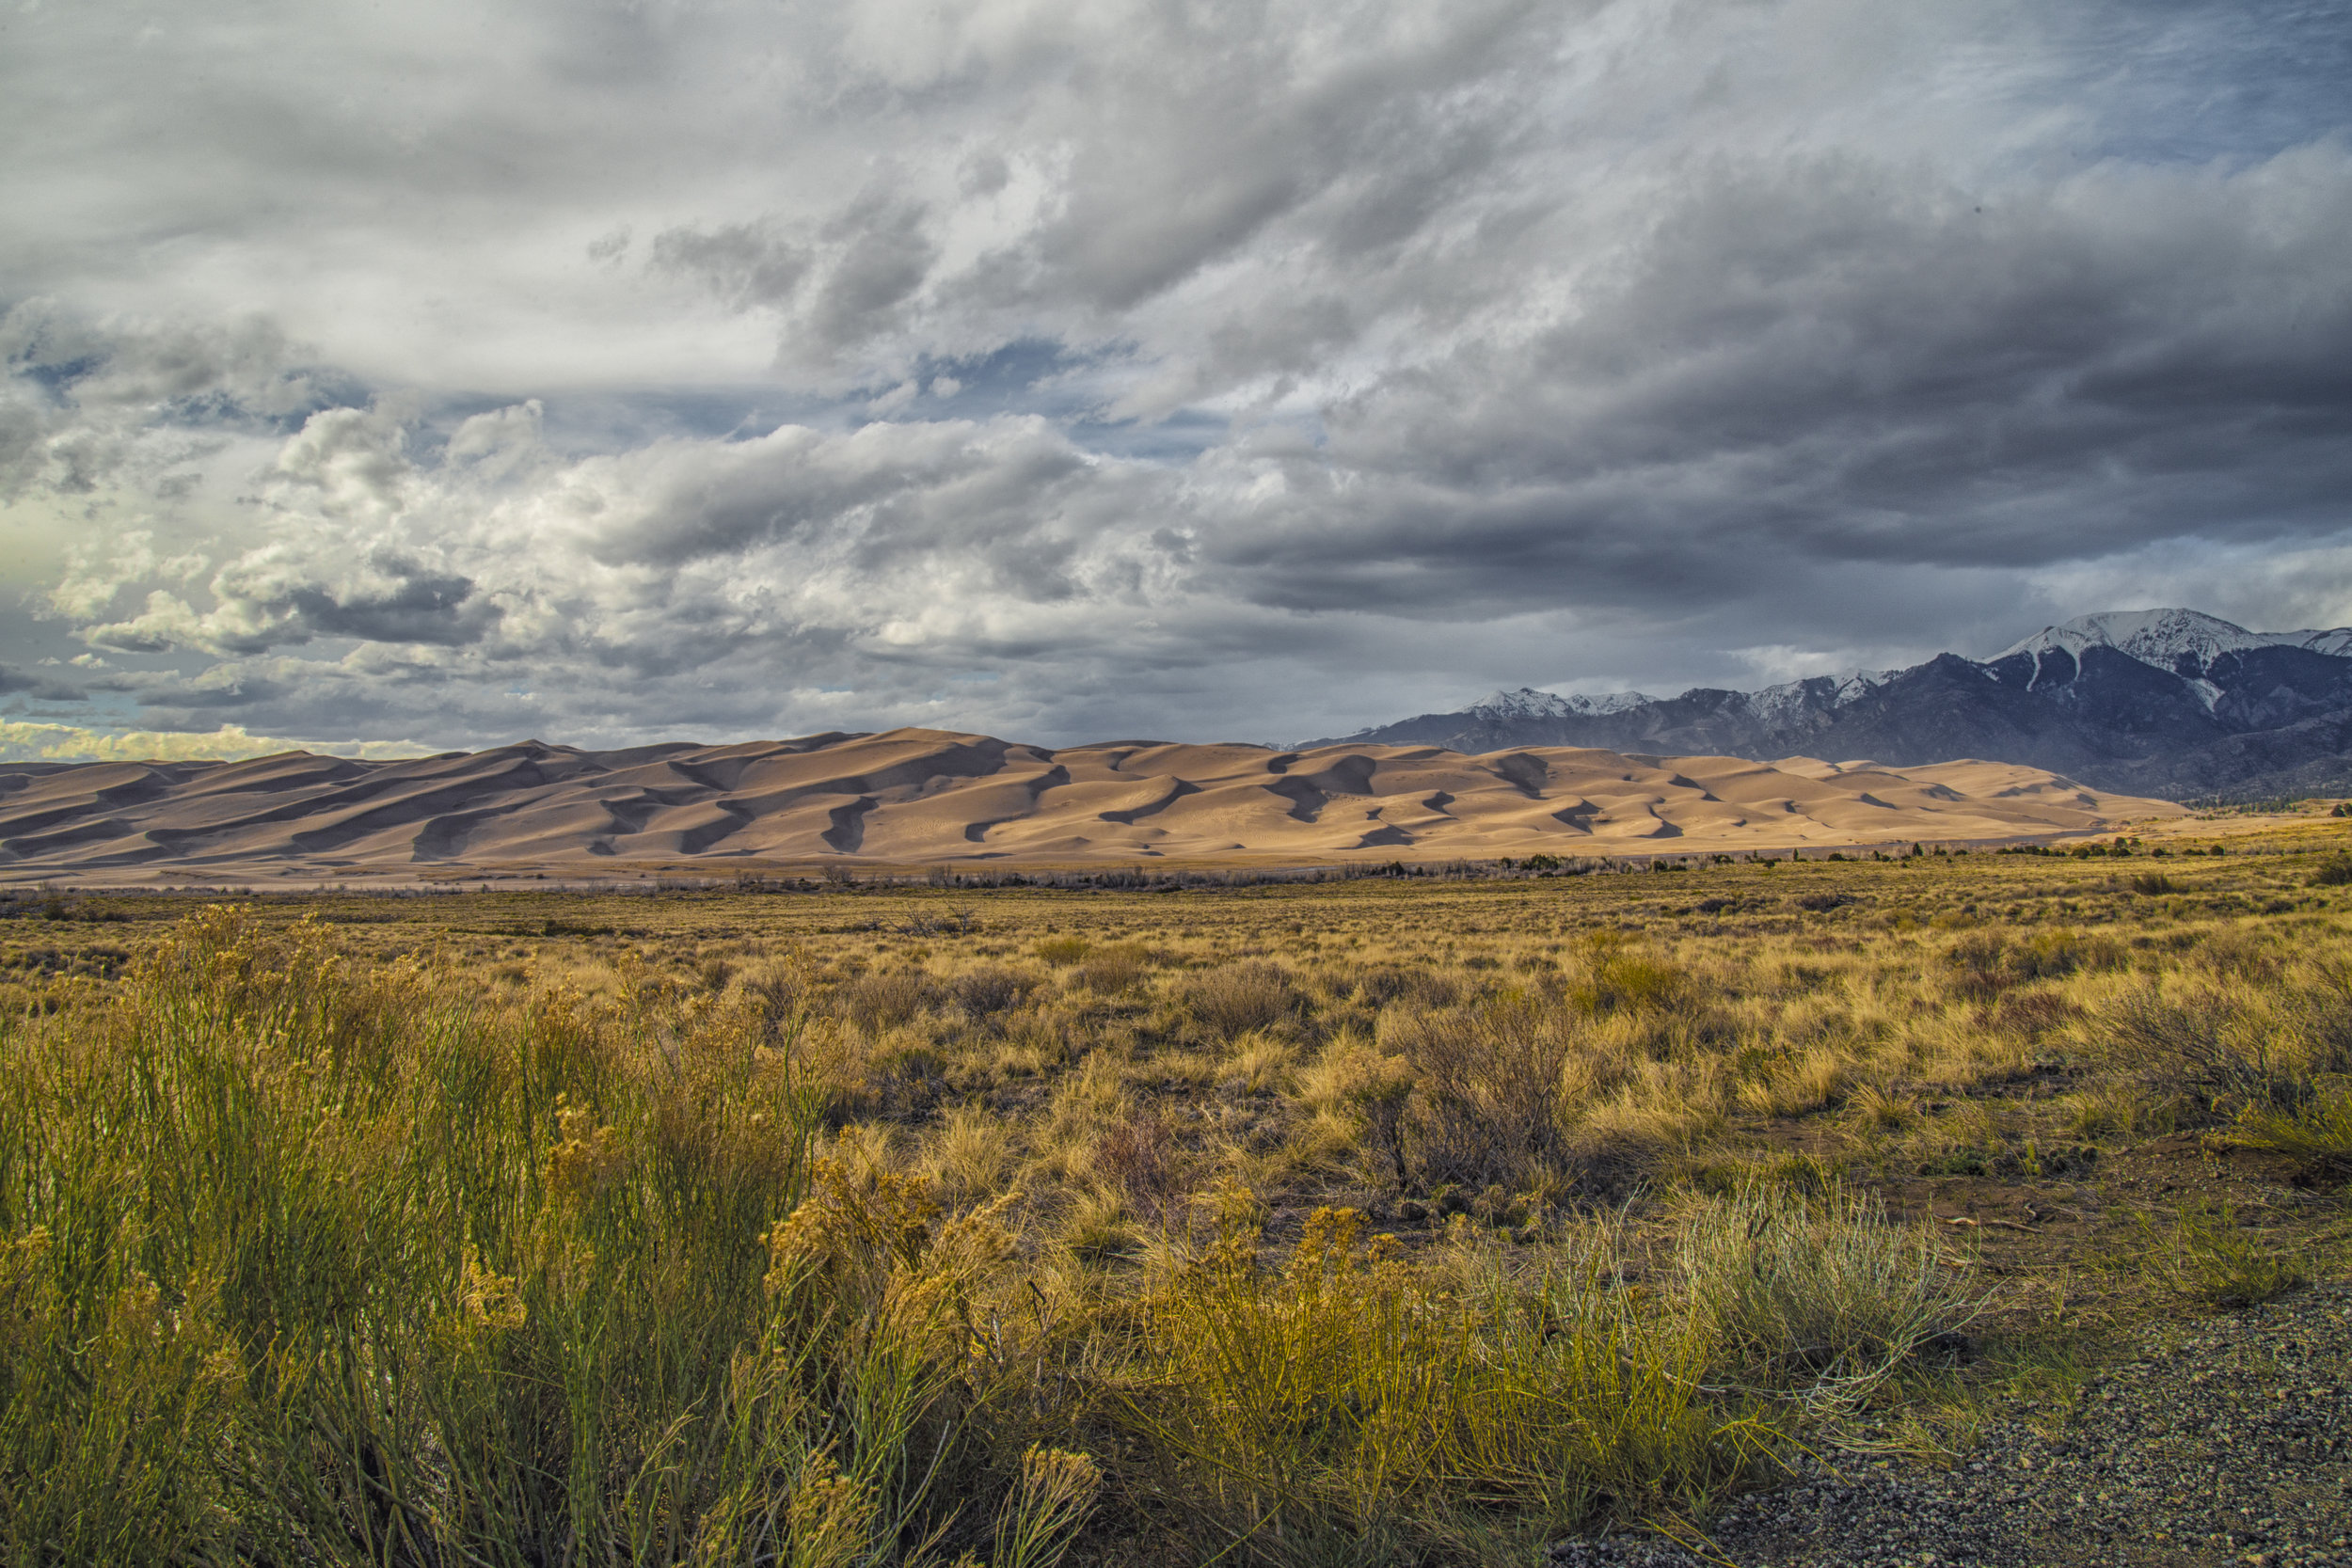 Dunes by the Mountains